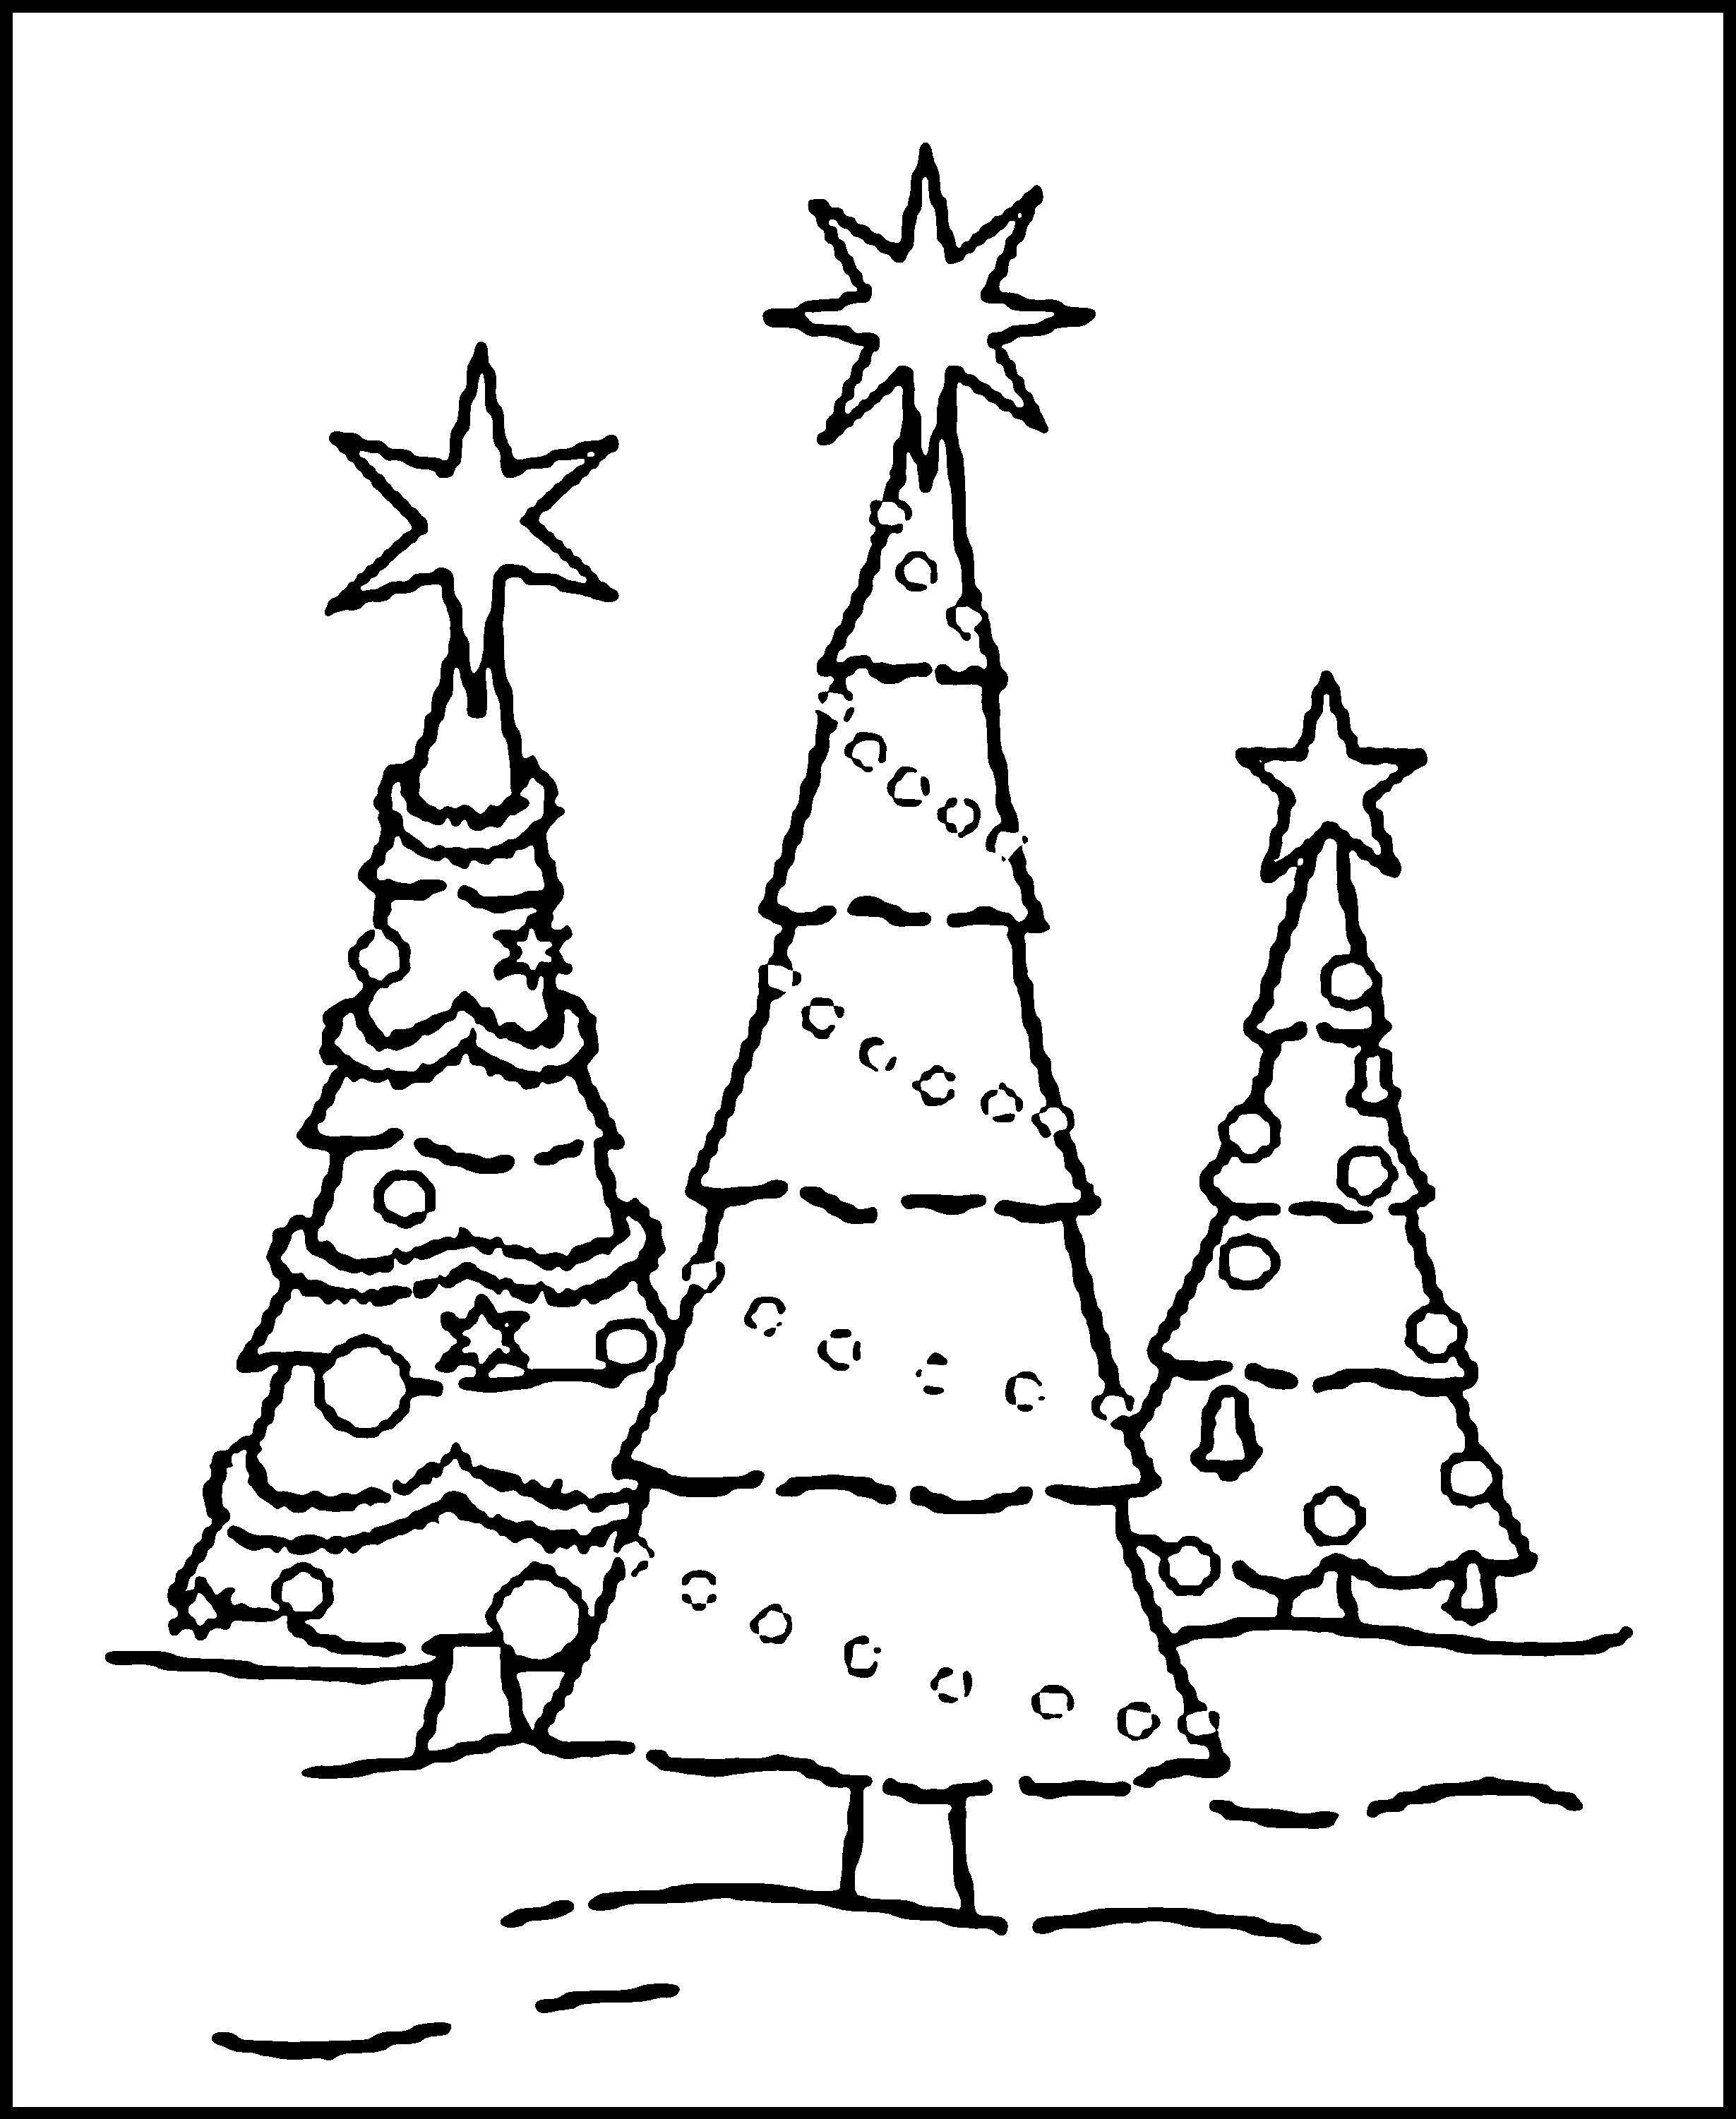 Christmas Tree Colouring Pages For Adults With Coloring Best Adult